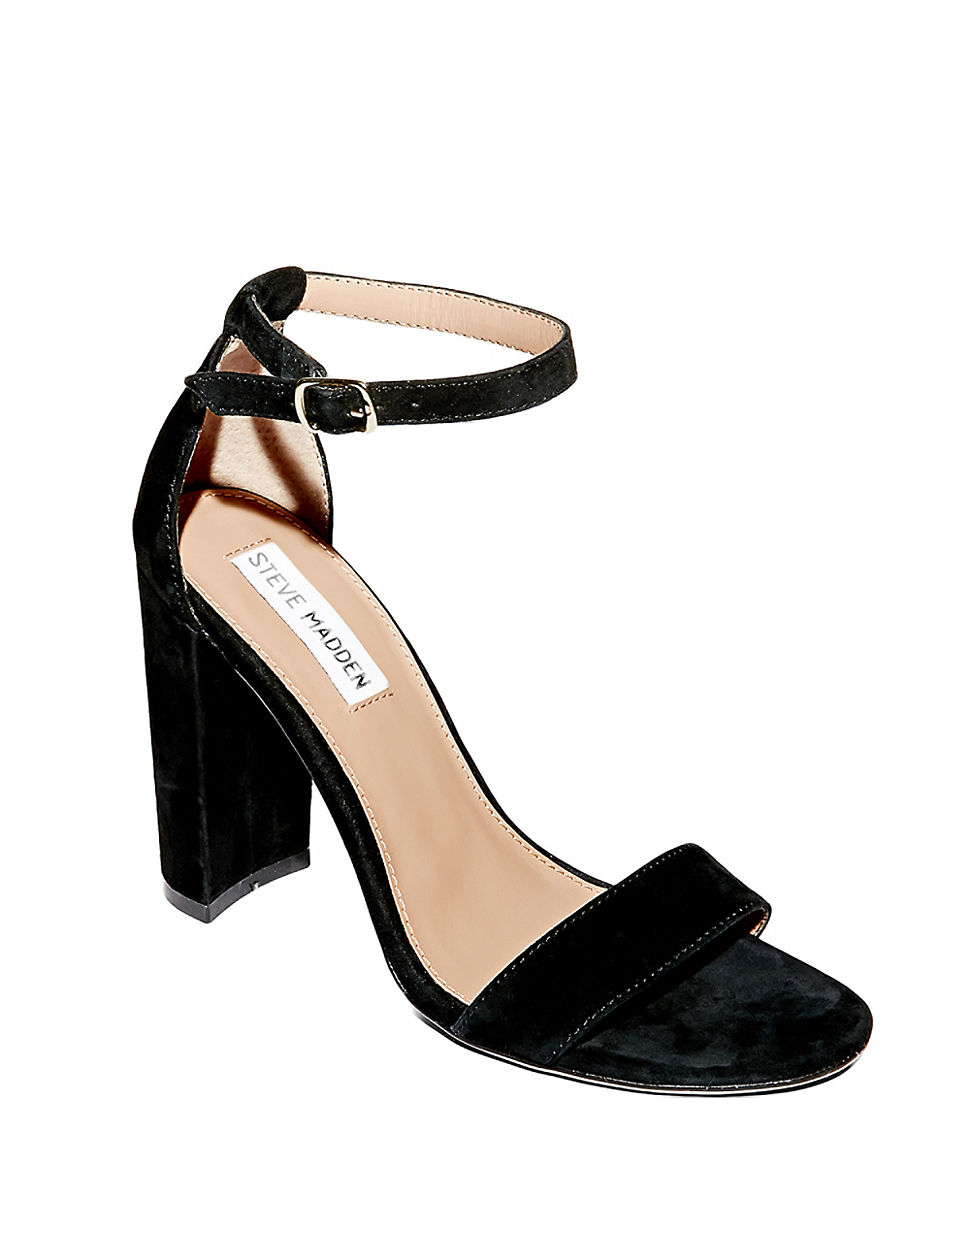 steve madden carrson suede sandals in black save 6 lyst